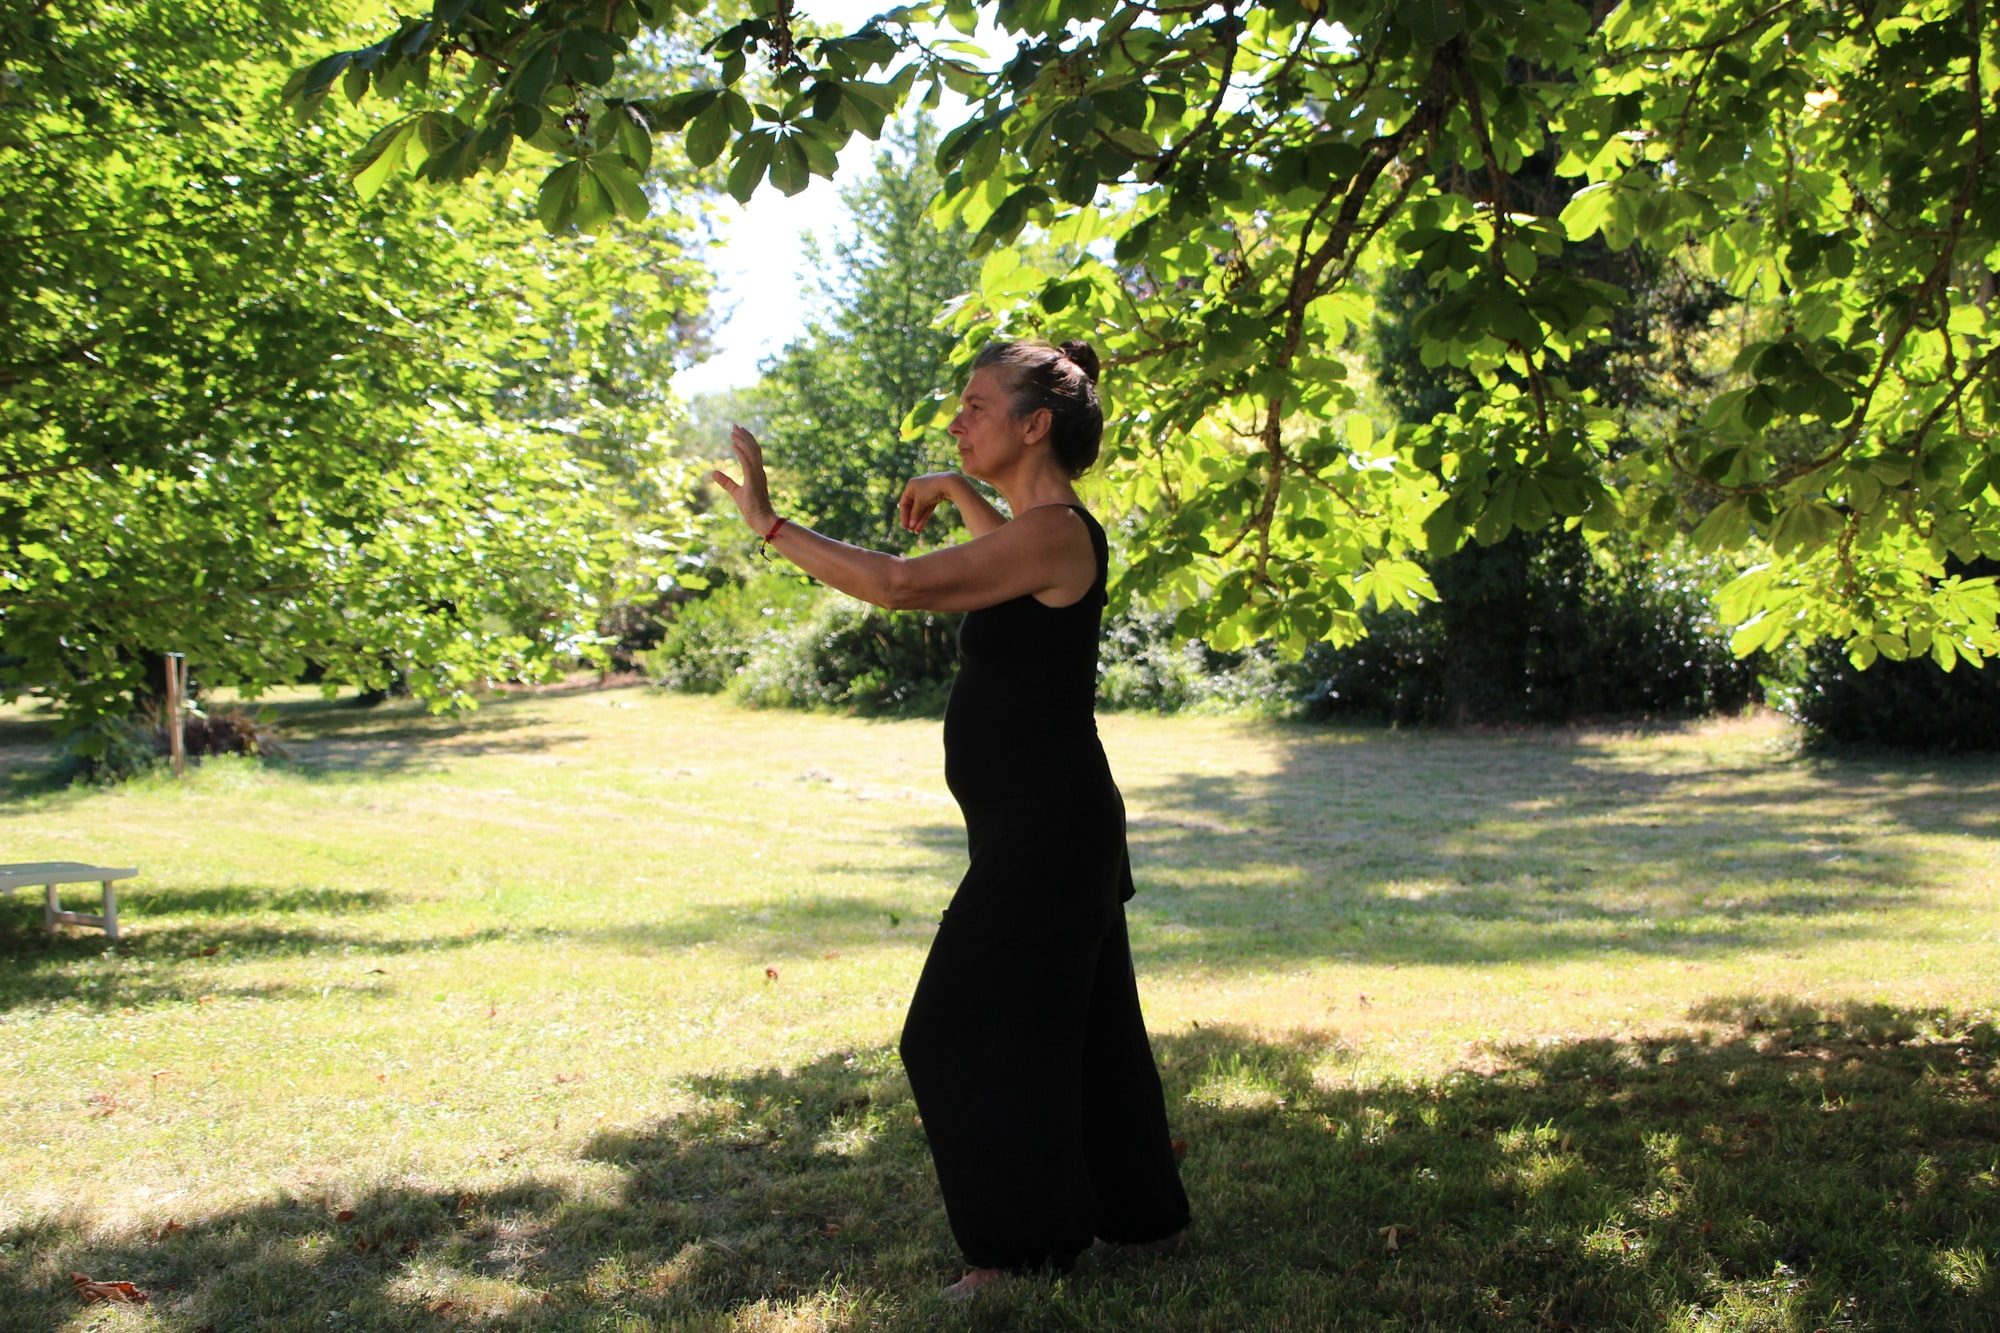 taichi master performence in the garden under a tree